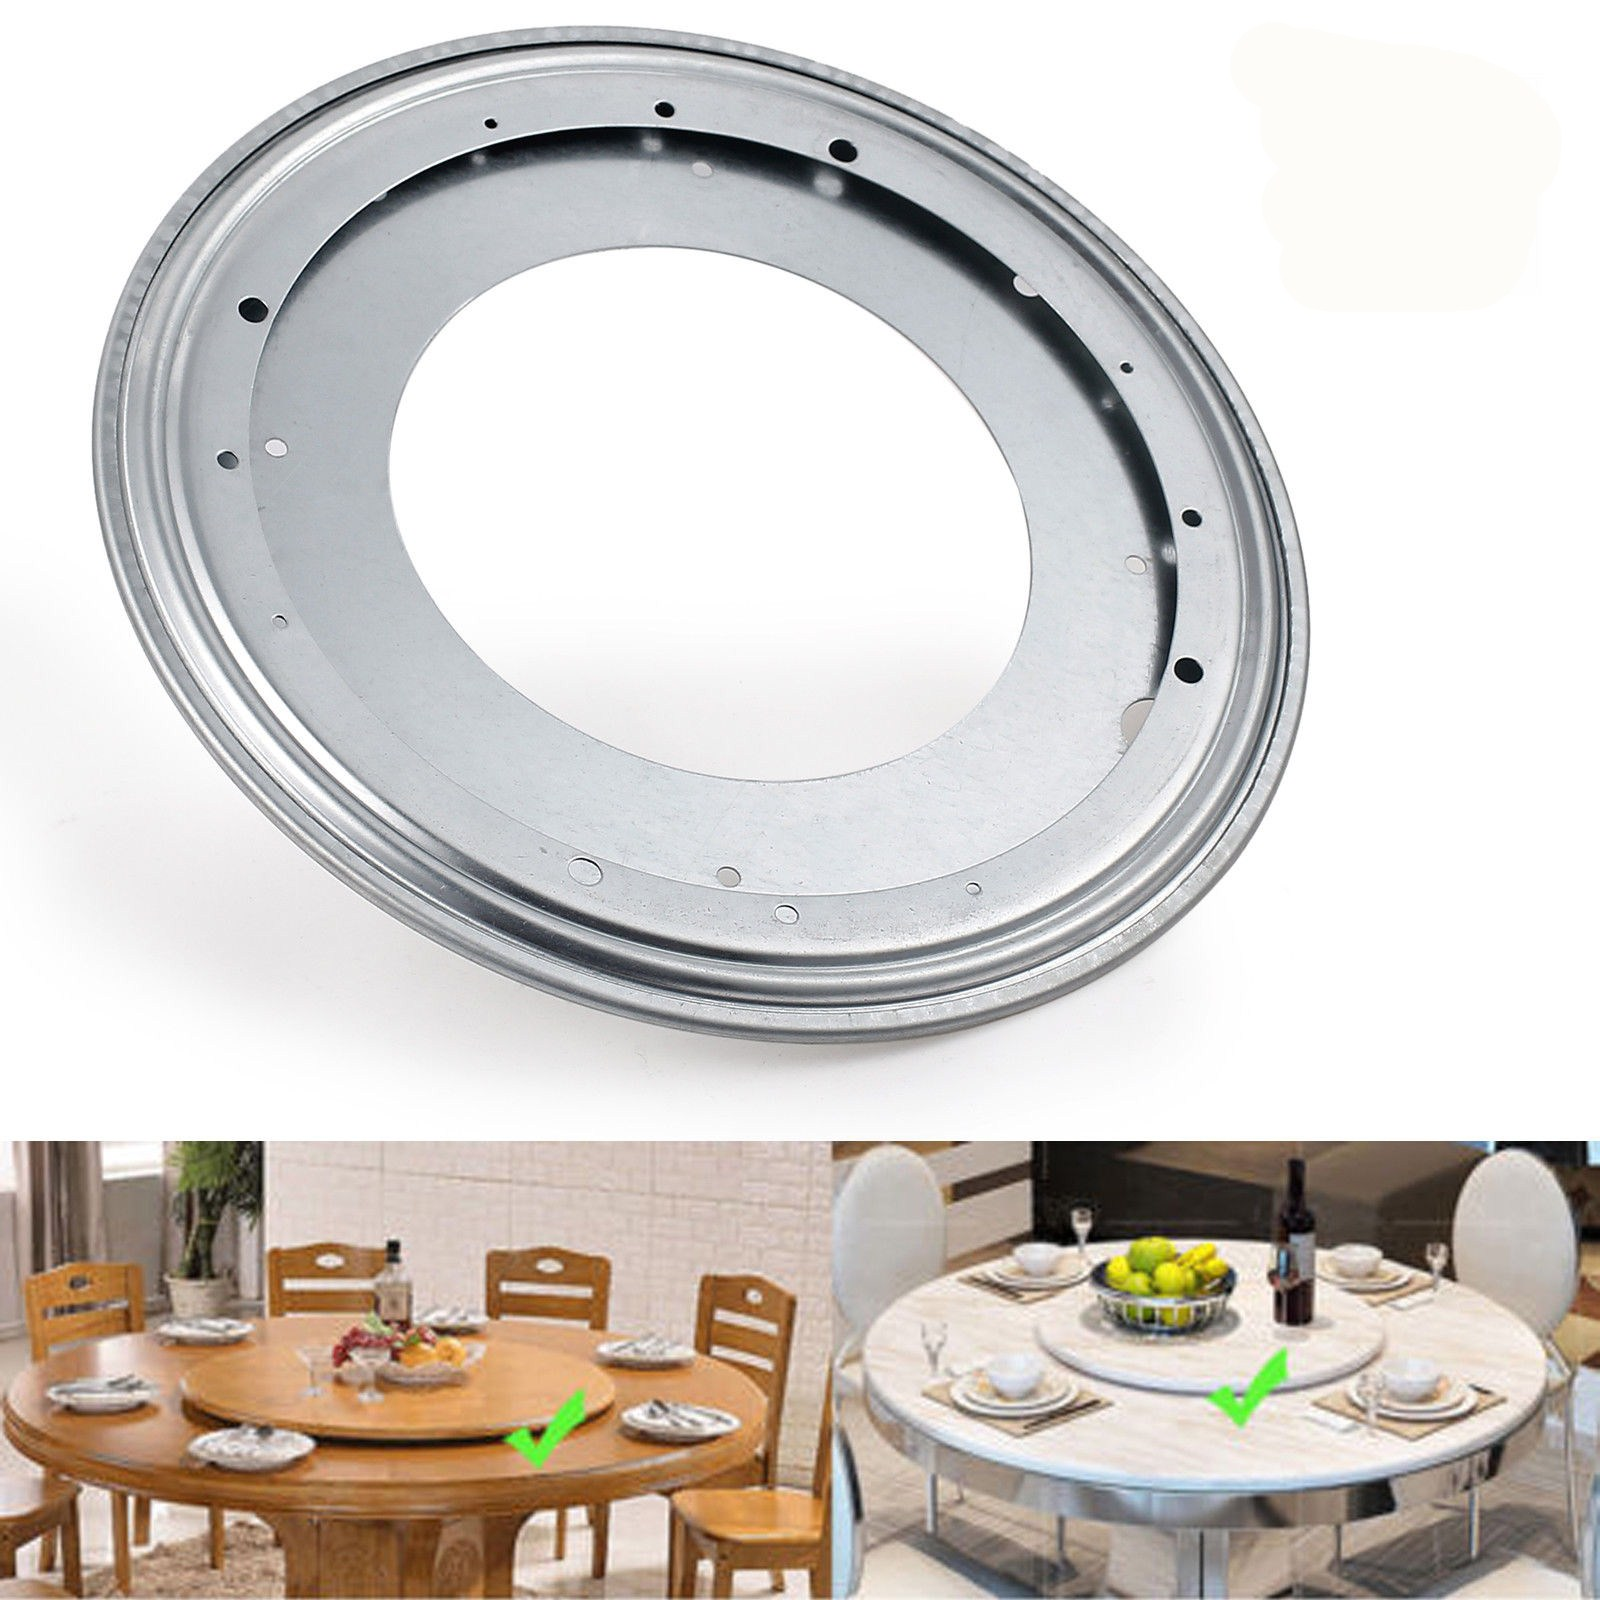 12 Inch Heavy Duty Lazy Susan Bearing Metal Swivel Bearing Swivel Plate Round Turntable  ...